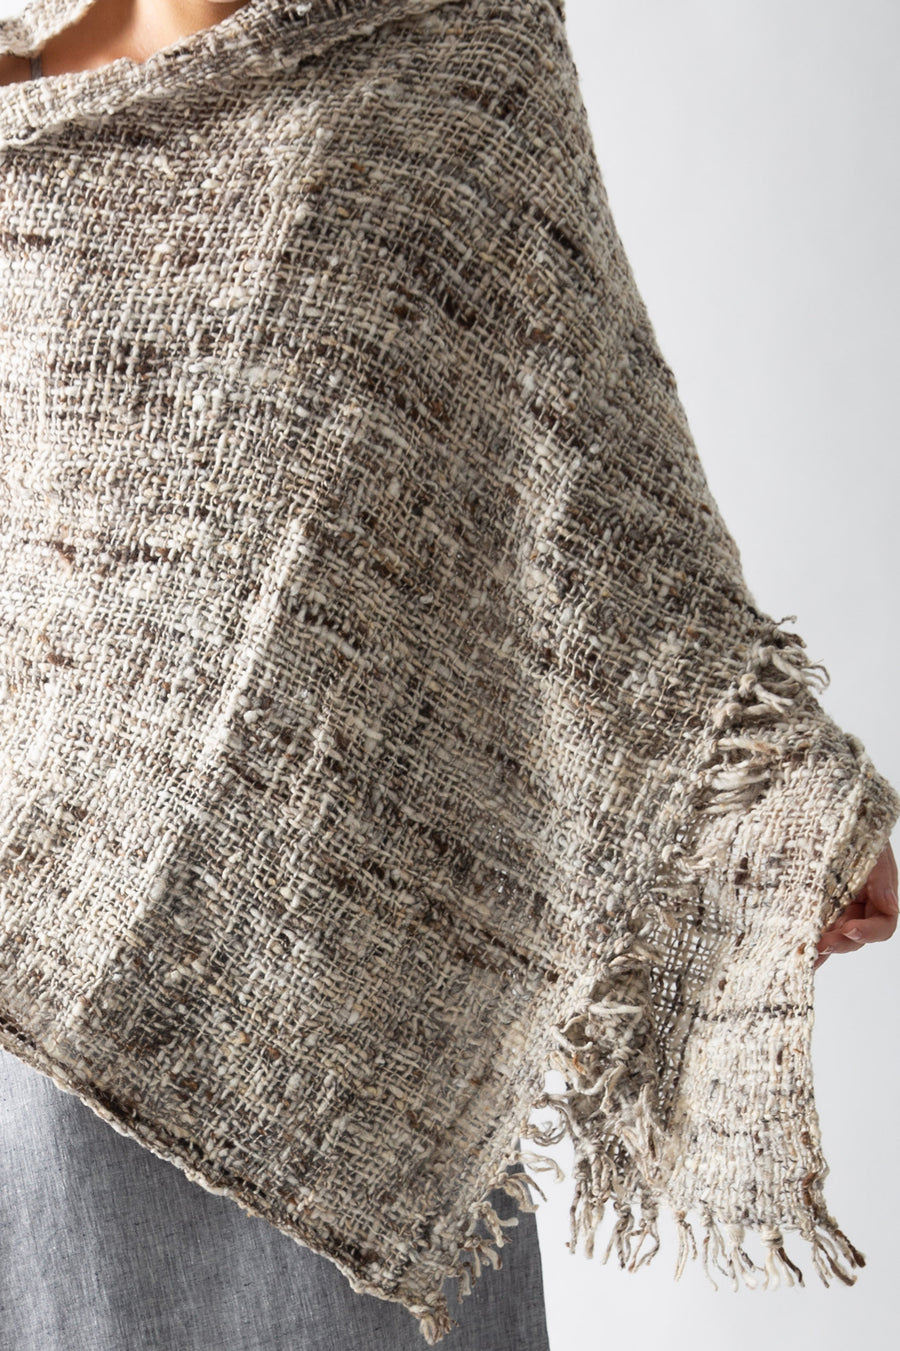 This photo is a close-up on the texture of the shawl, and also features the fringed tassels along the edge.